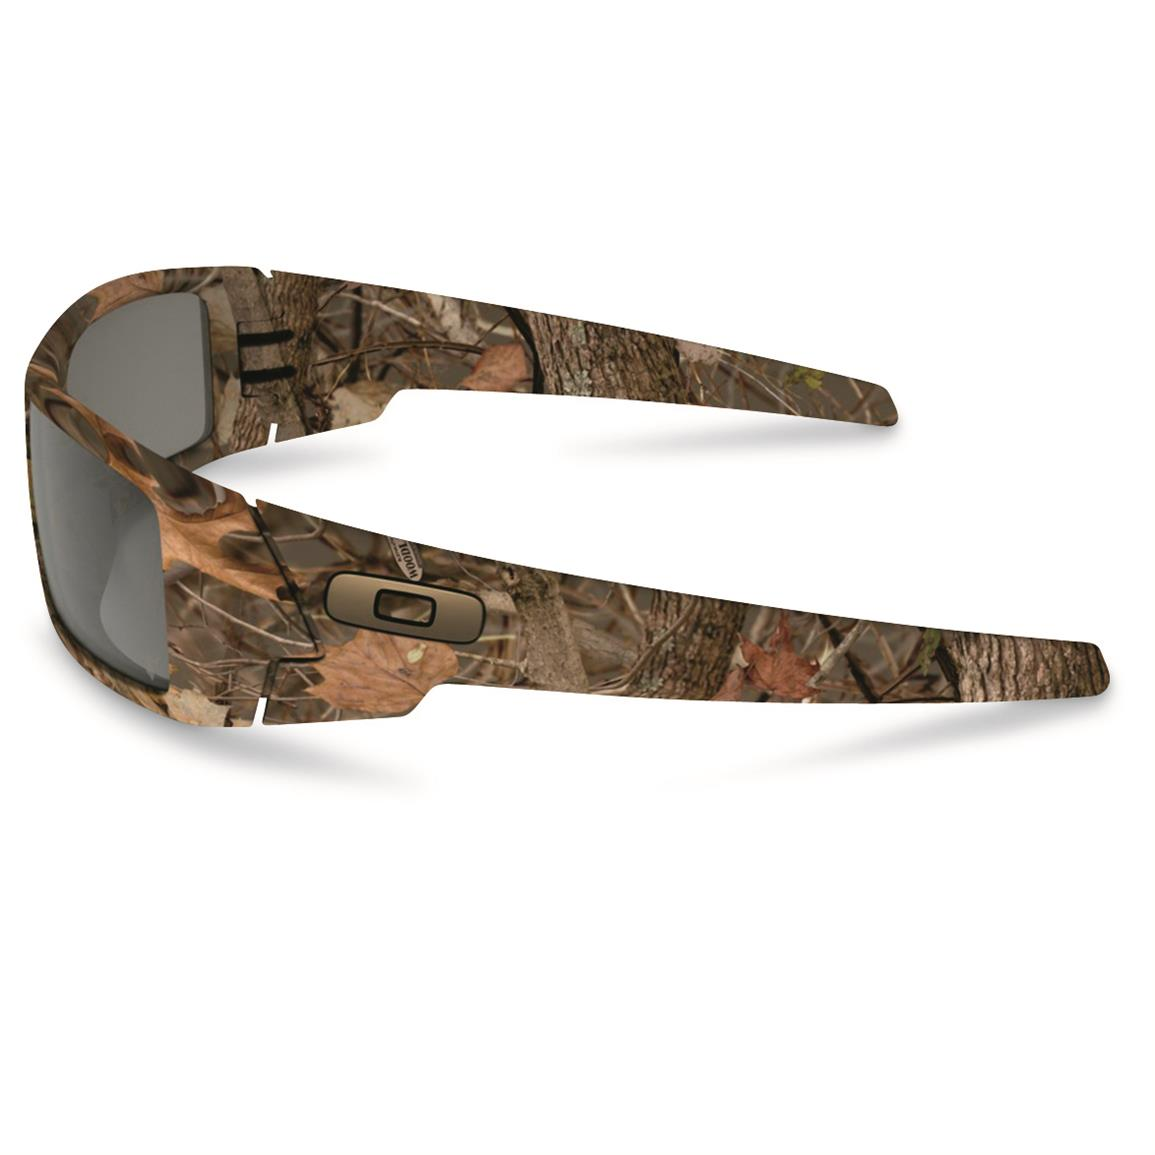 King's Woodland camo finish is perfect for the outdoor enthusiast